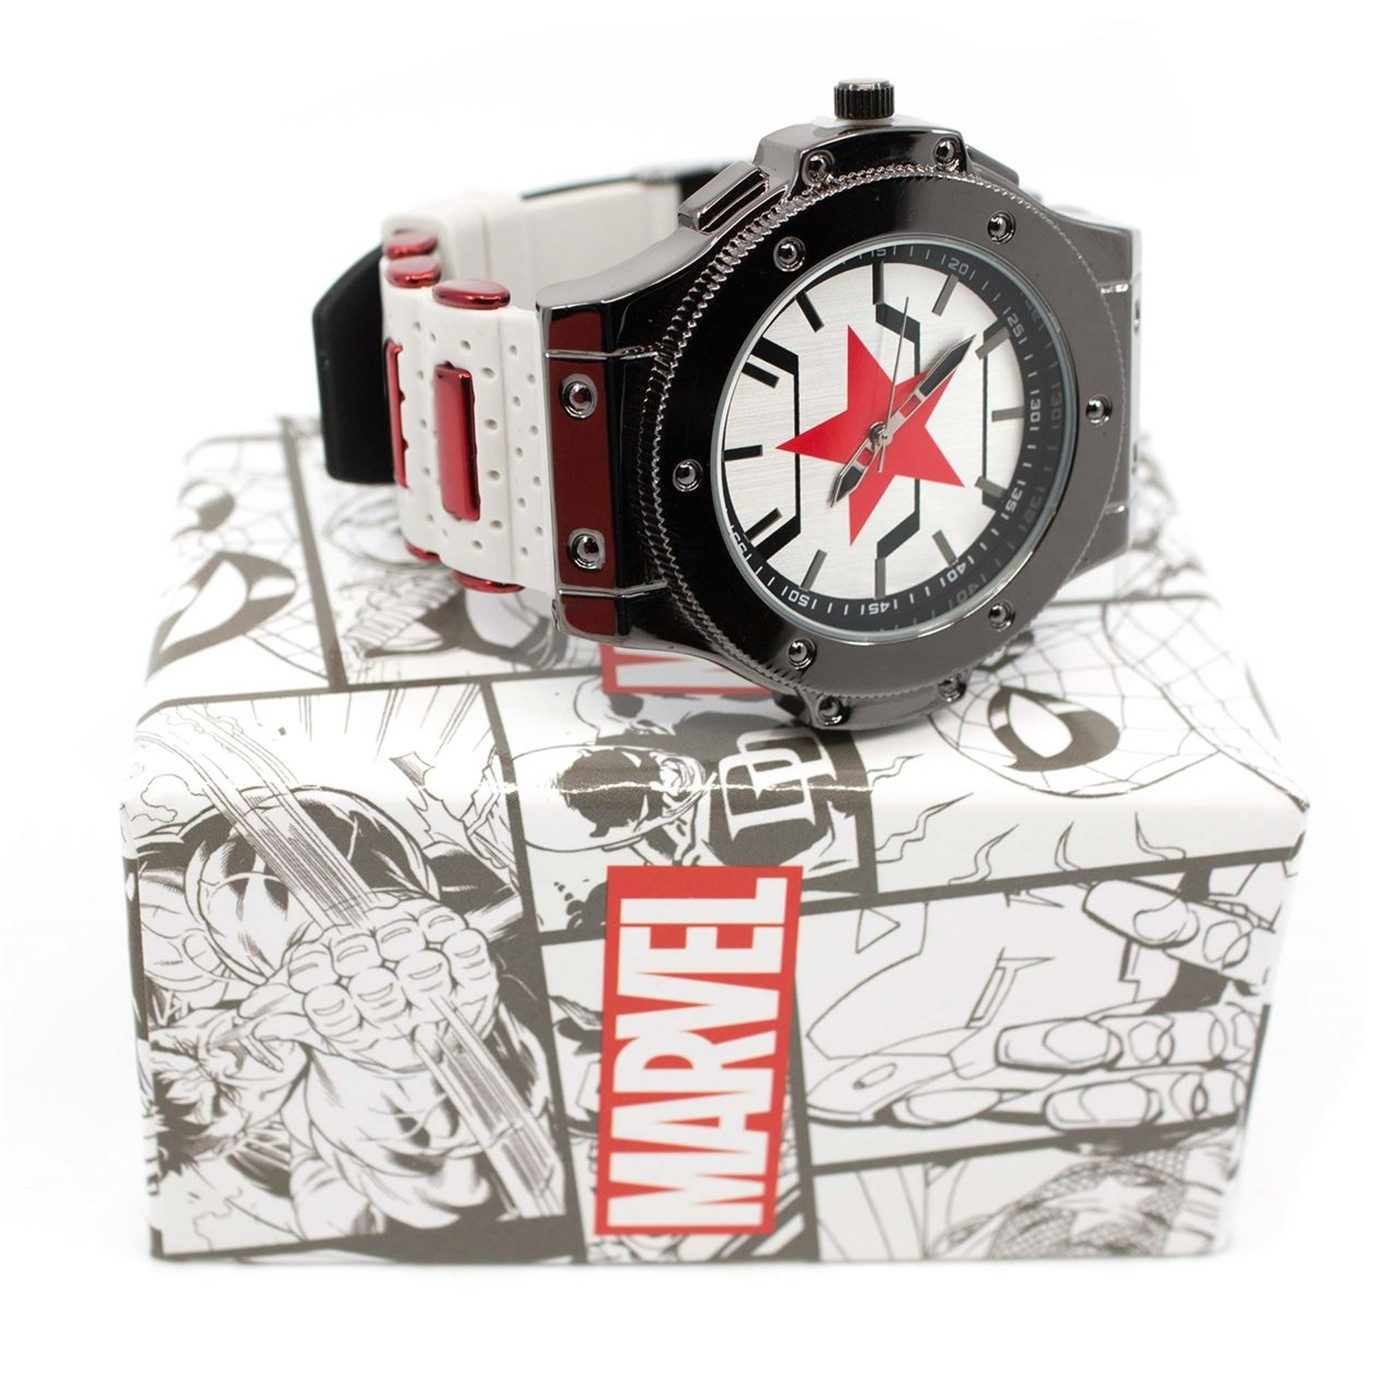 Winter Soldier Armor Watch with Adjustable Strap